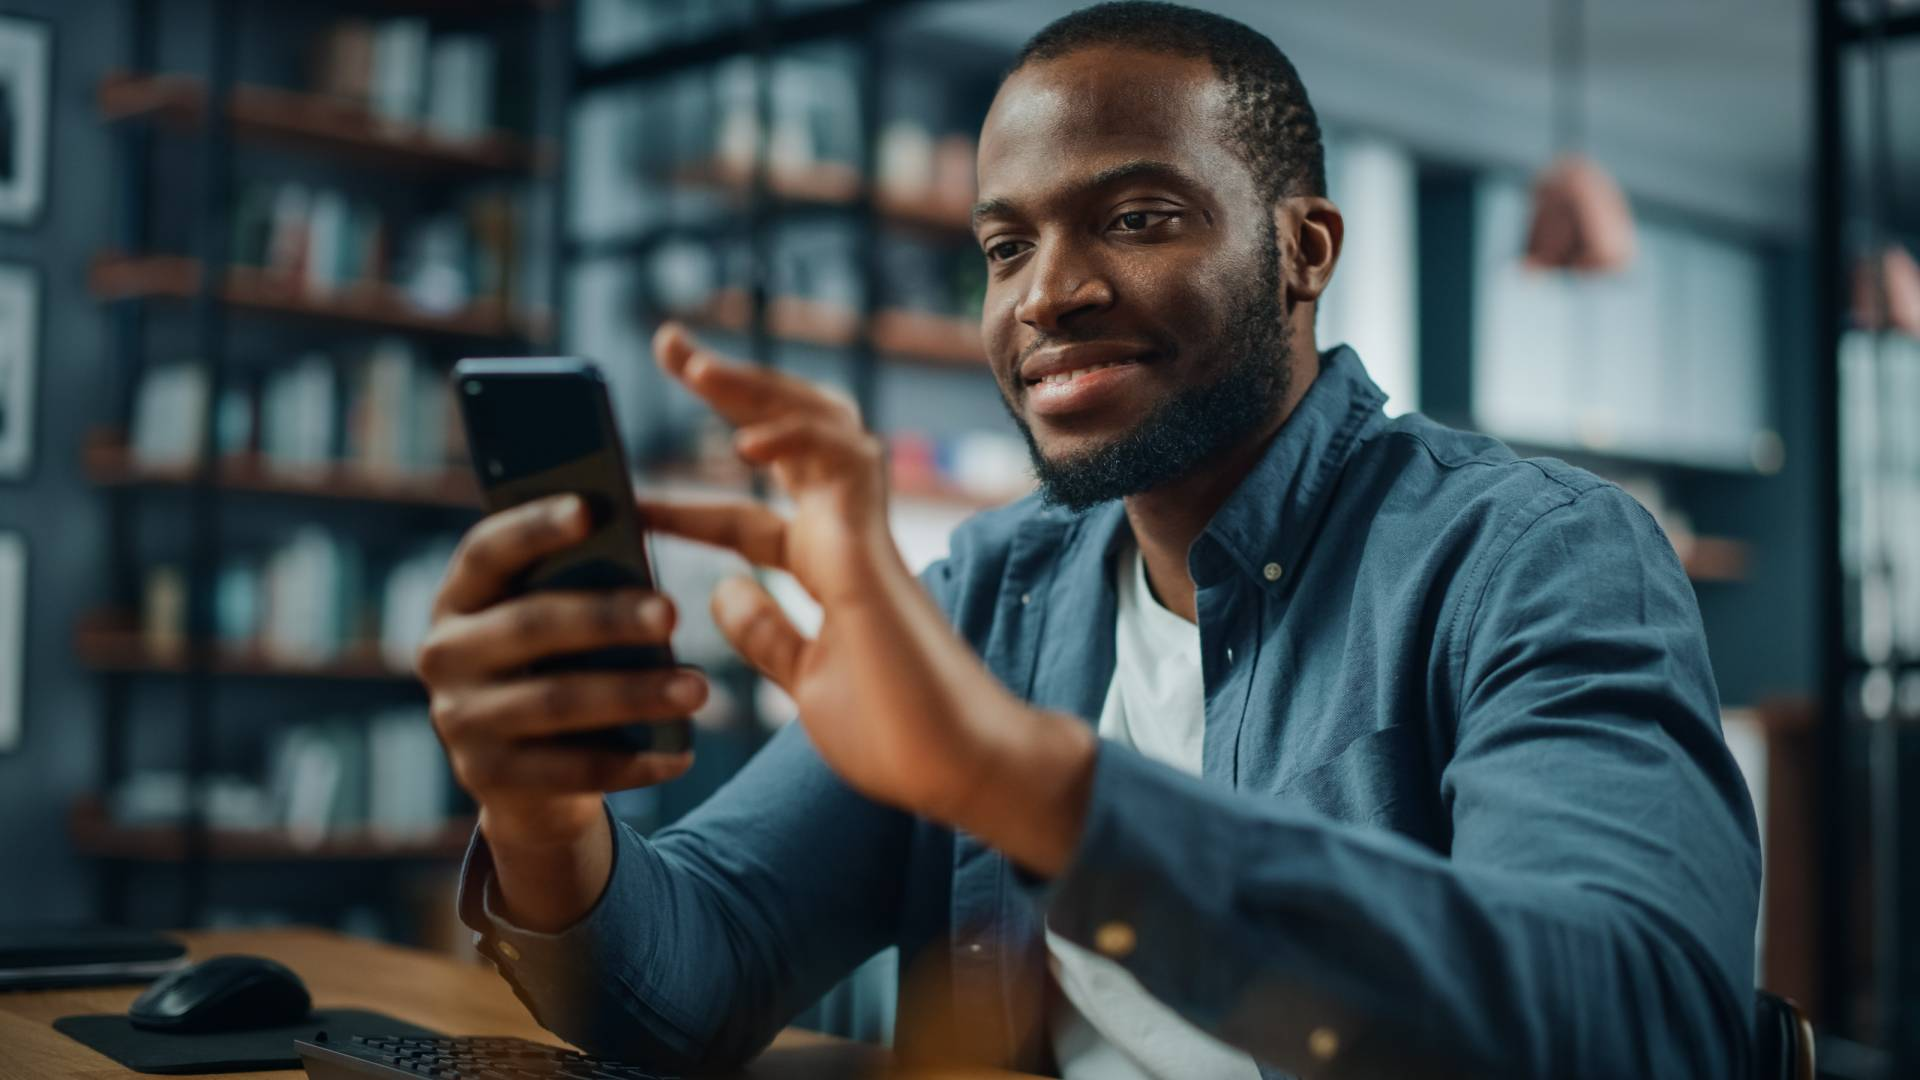 Man completing education from his phone